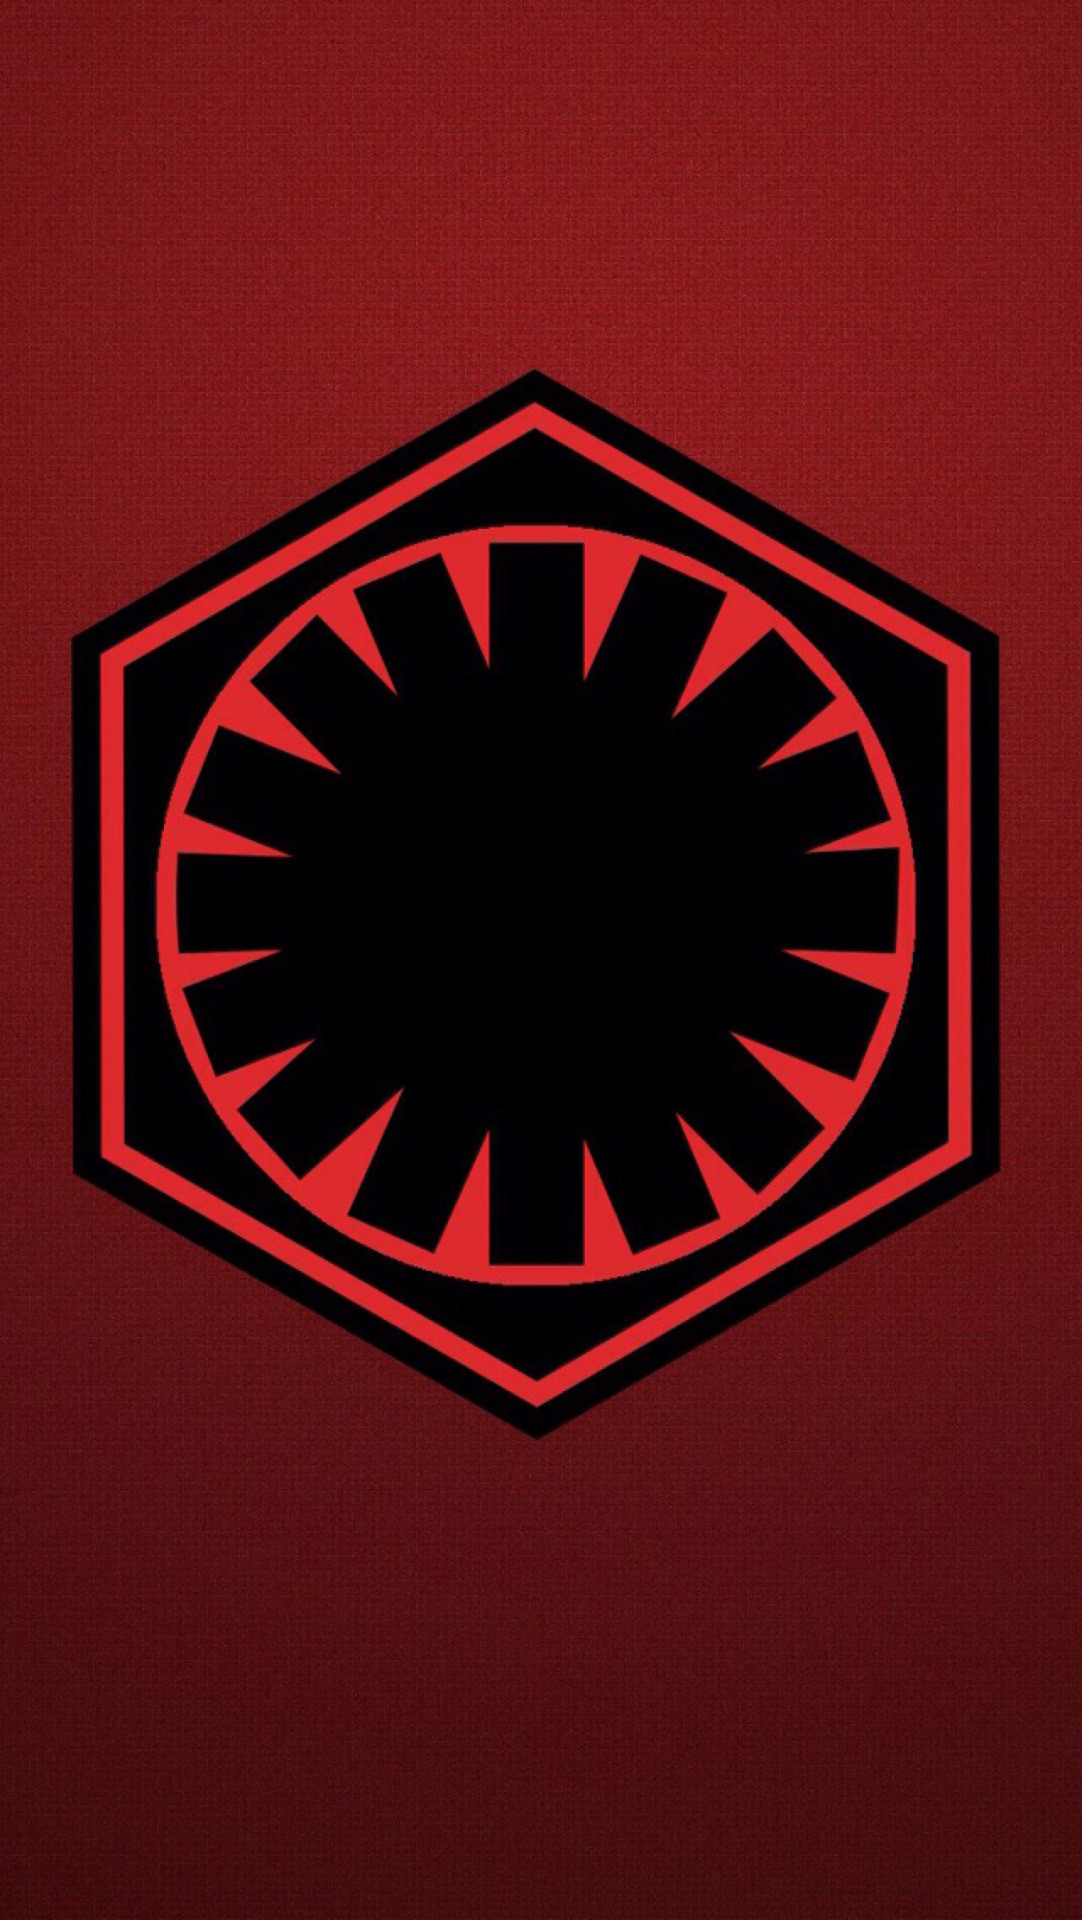 First Order Stormtrooper Iphone Wallpaper 64 Images